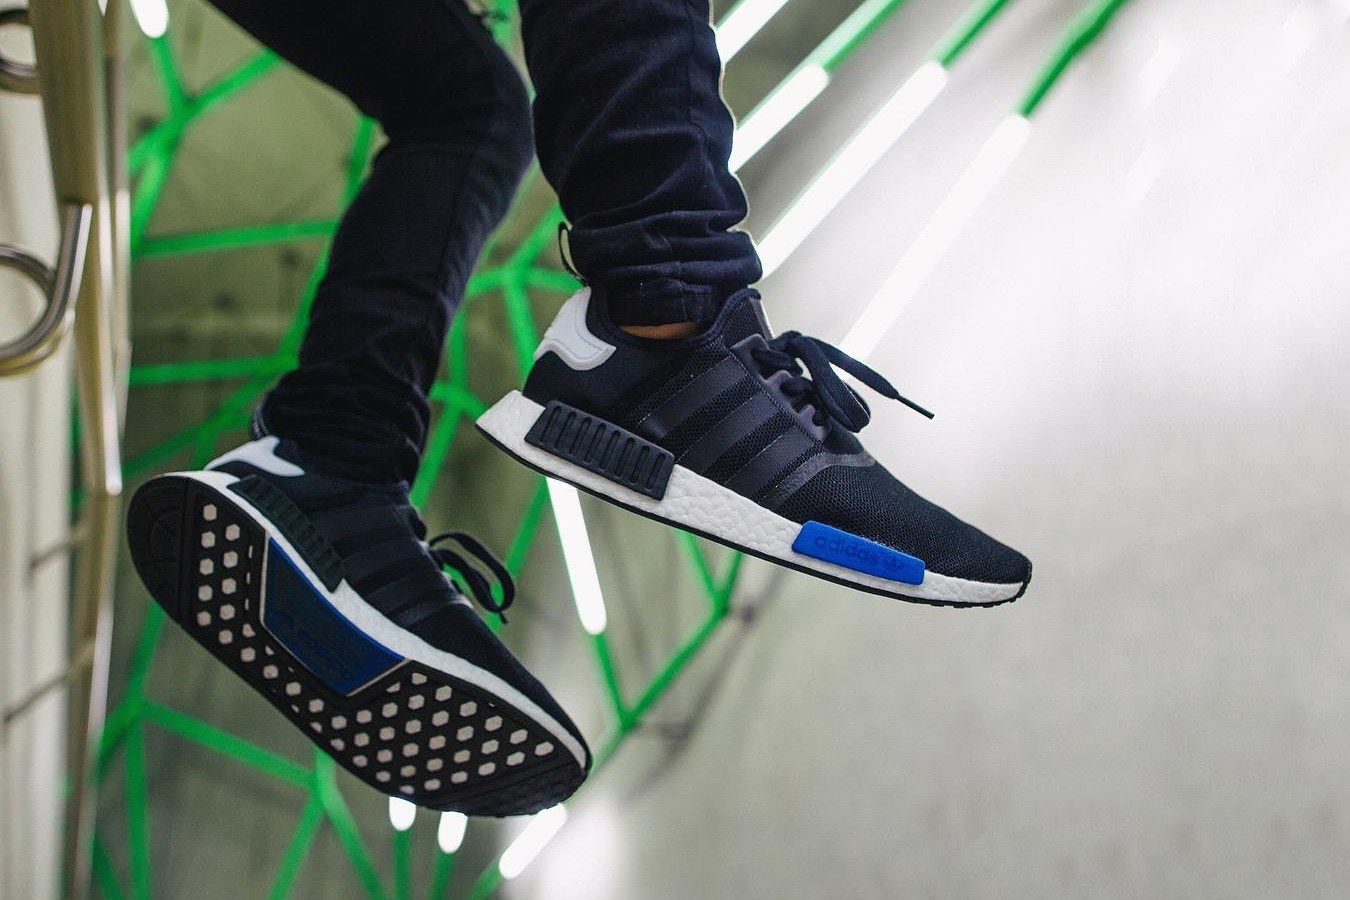 adidas-reveals-two-new-colorways-for-the-nmd-3